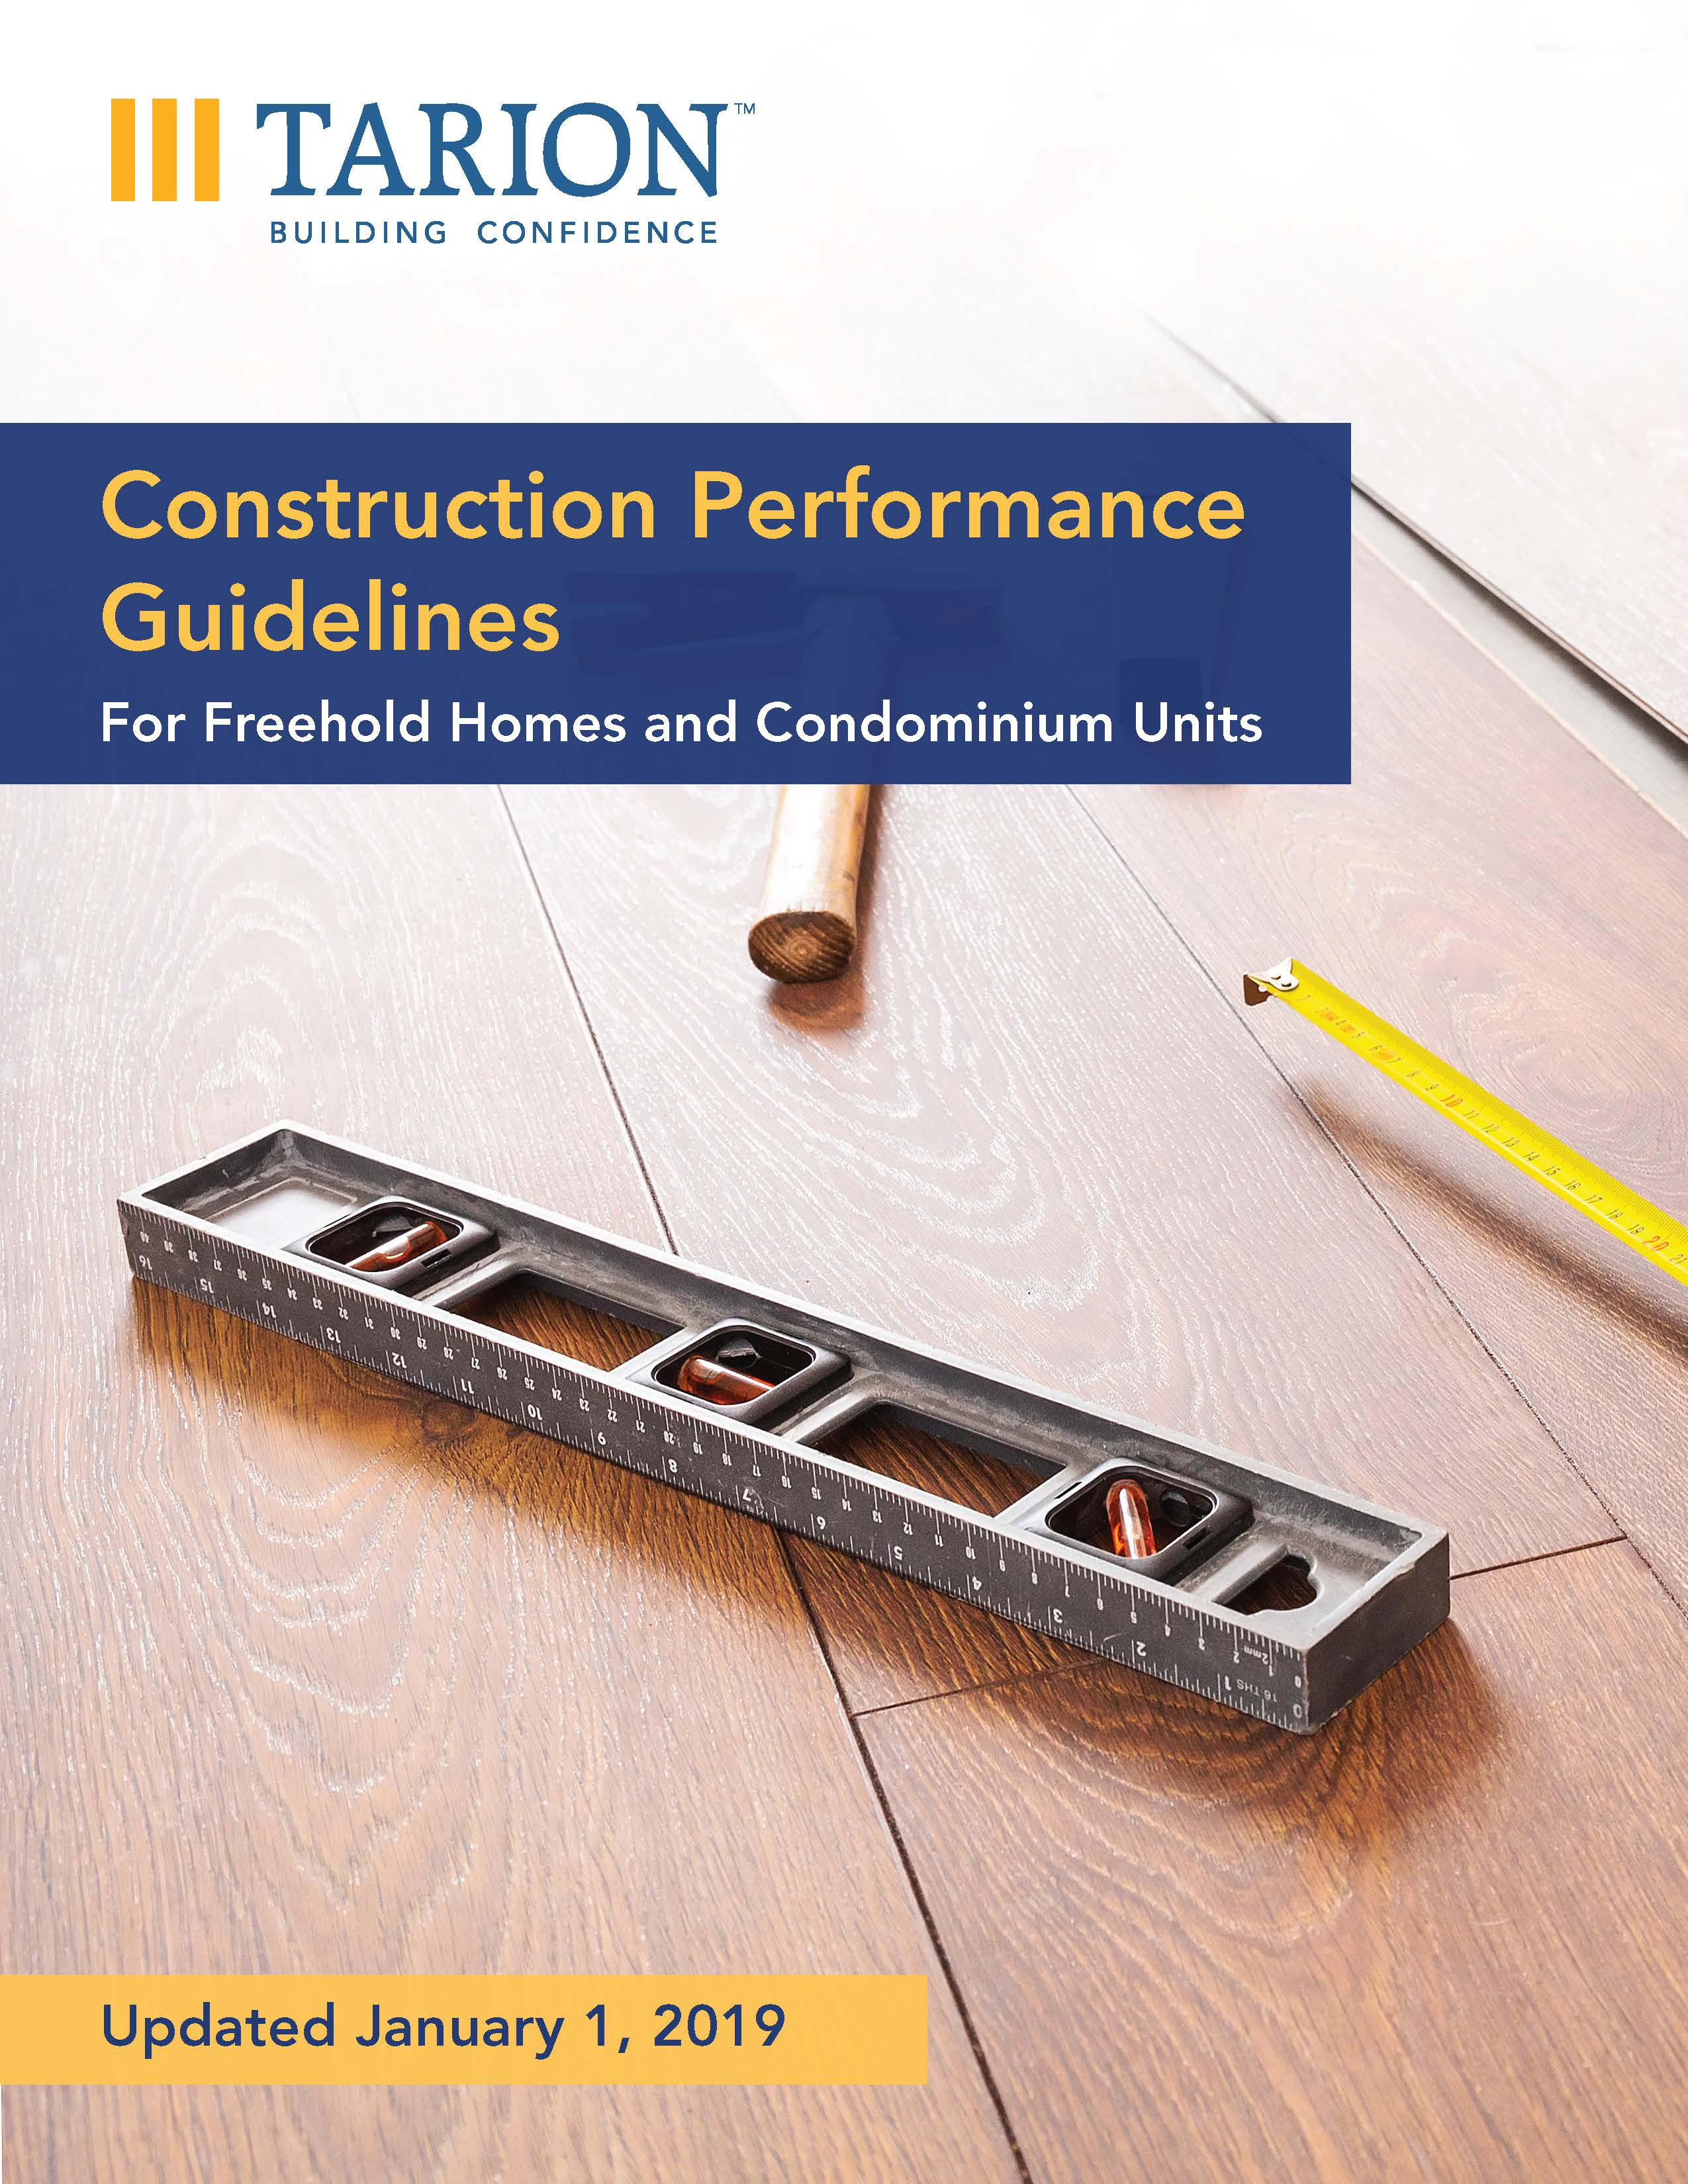 Construction Performance Guidelines new cover